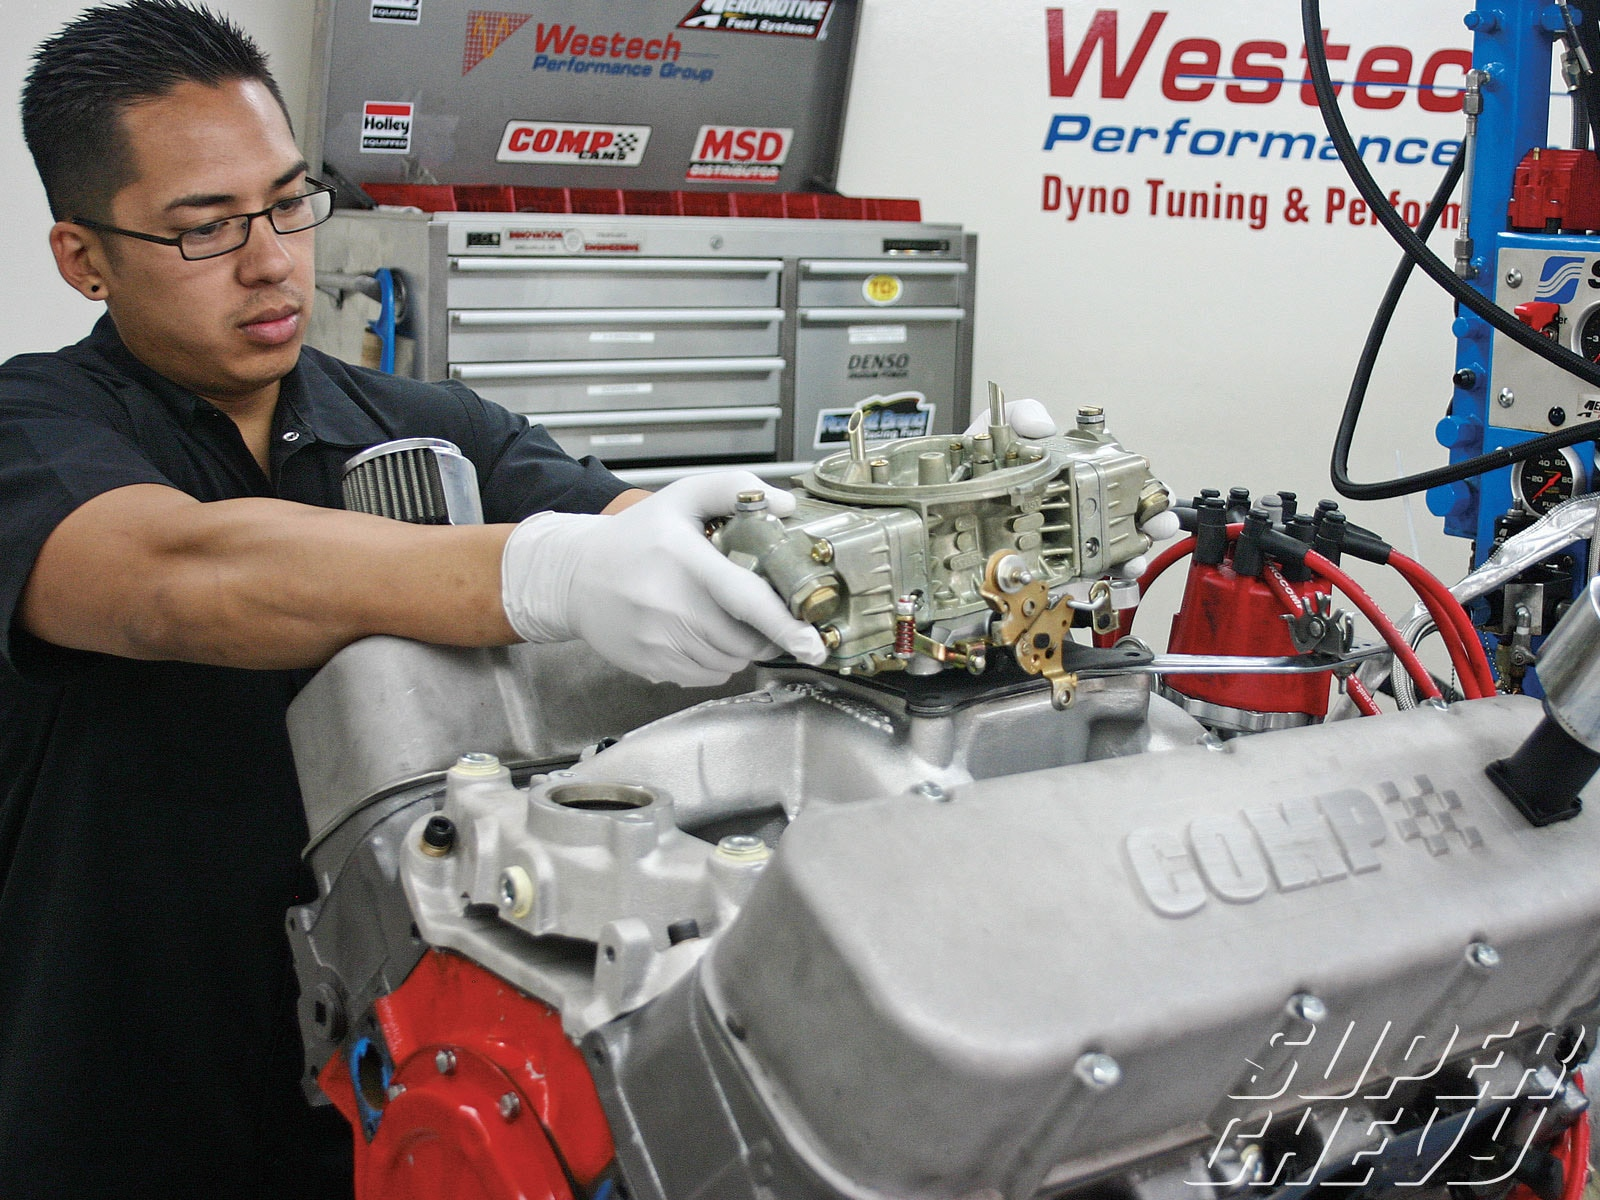 How to Build Max Performance Chevy Big Block Engines on a Budget 454 Chevrolet